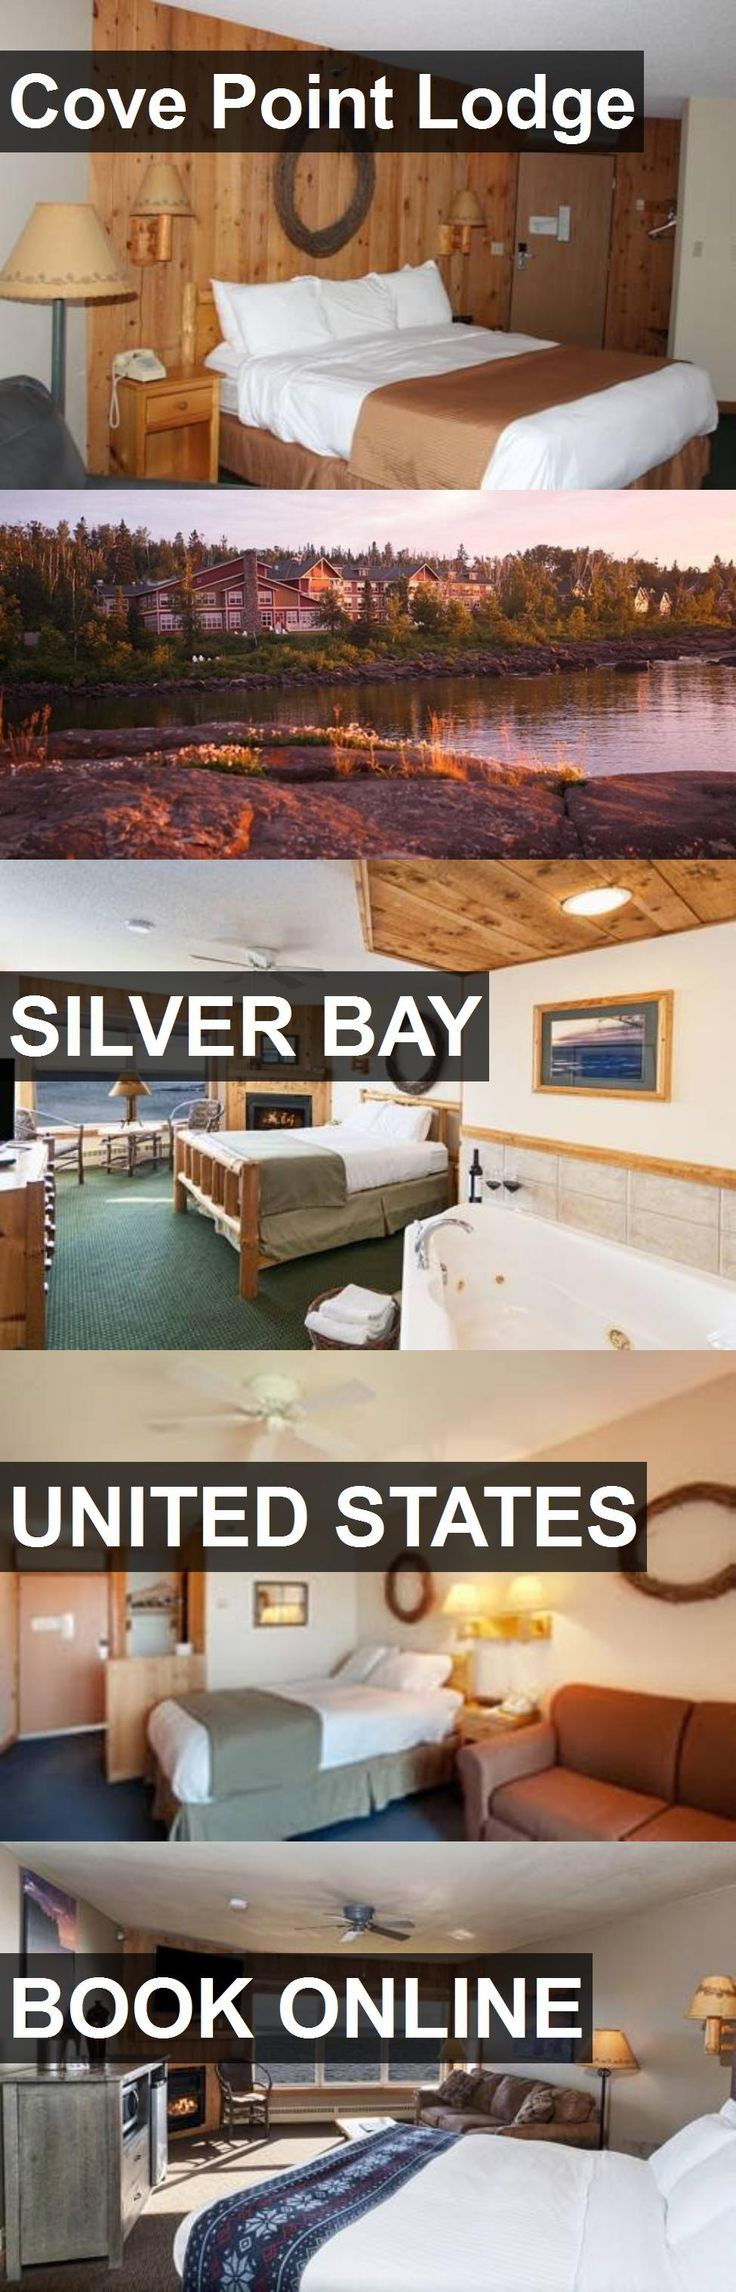 Hotel Cove Point Lodge in Silver Bay, United States. For more information, photos, reviews and best prices please follow the link. #UnitedStates #SilverBay #CovePointLodge #hotel #travel #vacation